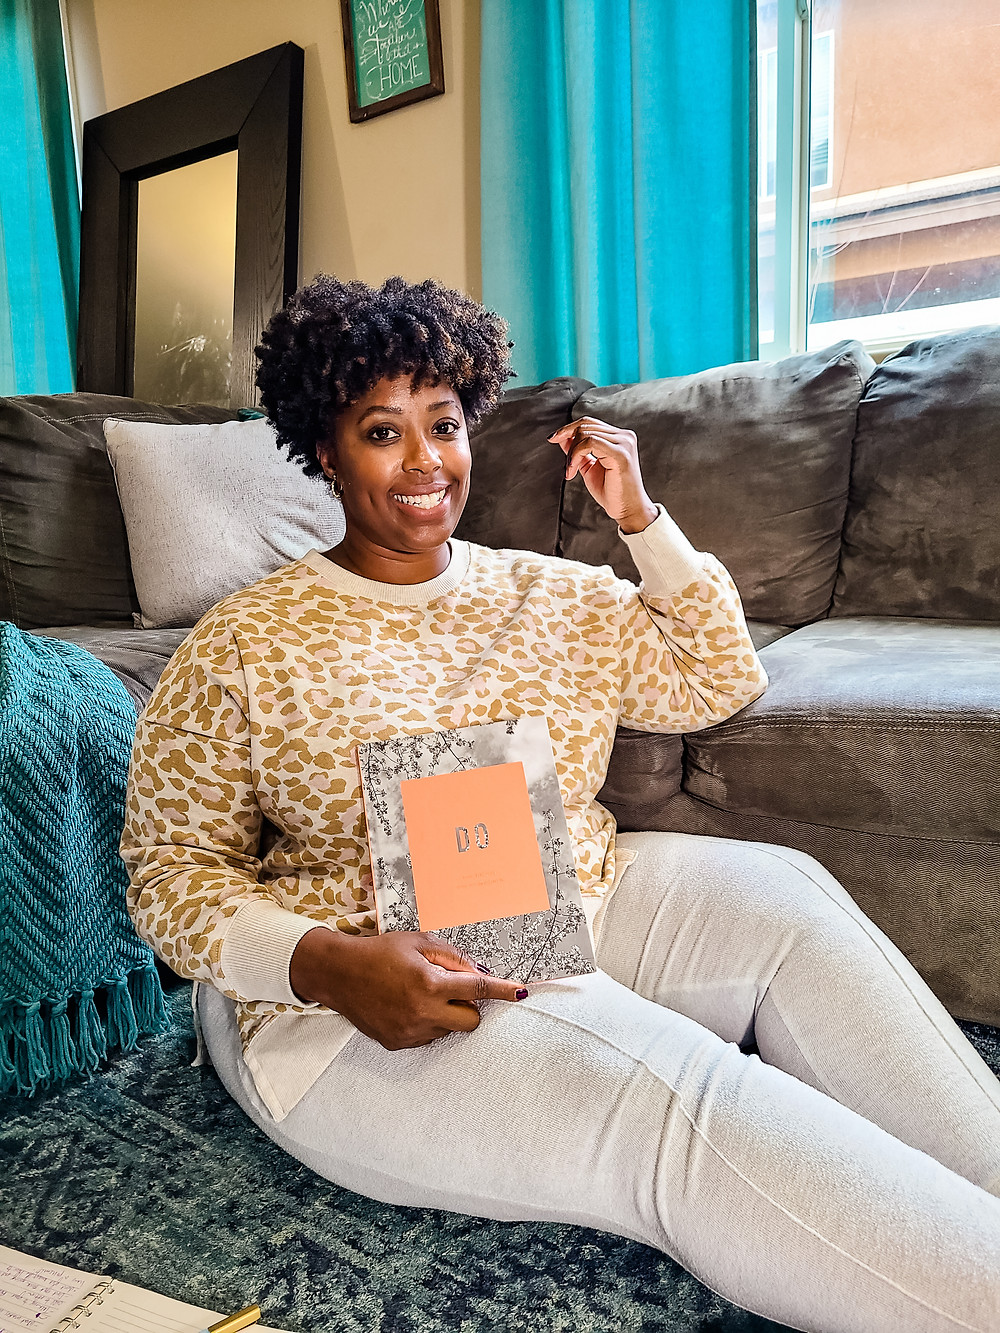 African American woman sitting on floor, holding journal. Shanell Tyus. Curly hair. Taper cut. Leopard print. Cozy at home. Cozy home shot. Planning and strategizing.